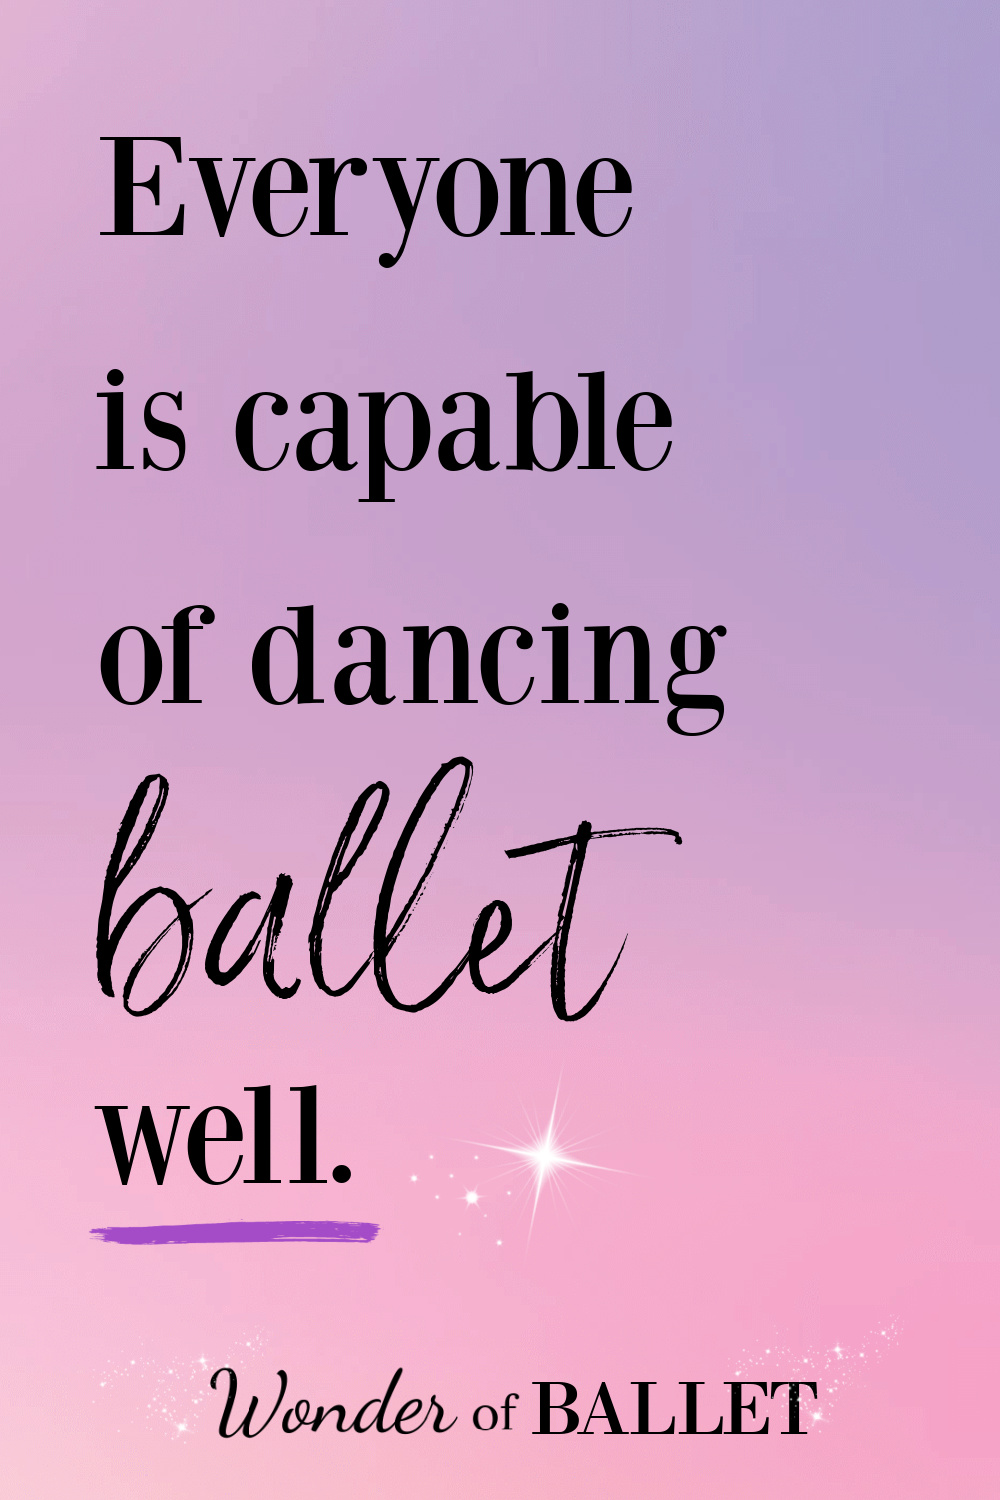 Everyone is capable of dancing ballet well.